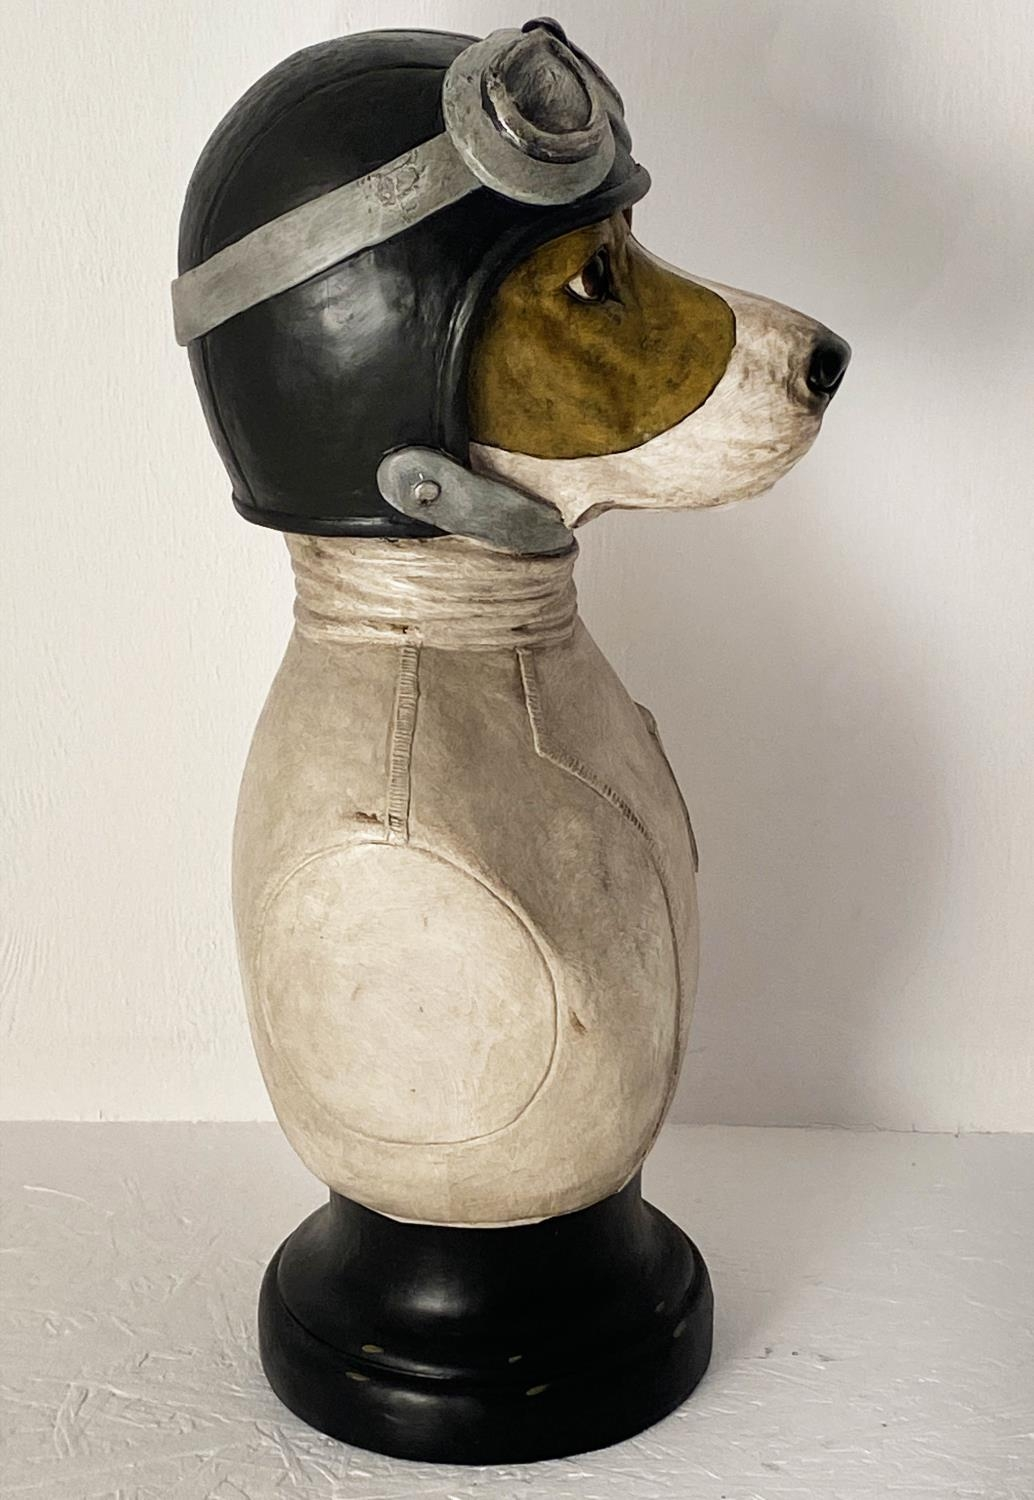 STIRLING MUTTS, Contemporary School study, 52cm H. - Image 2 of 4